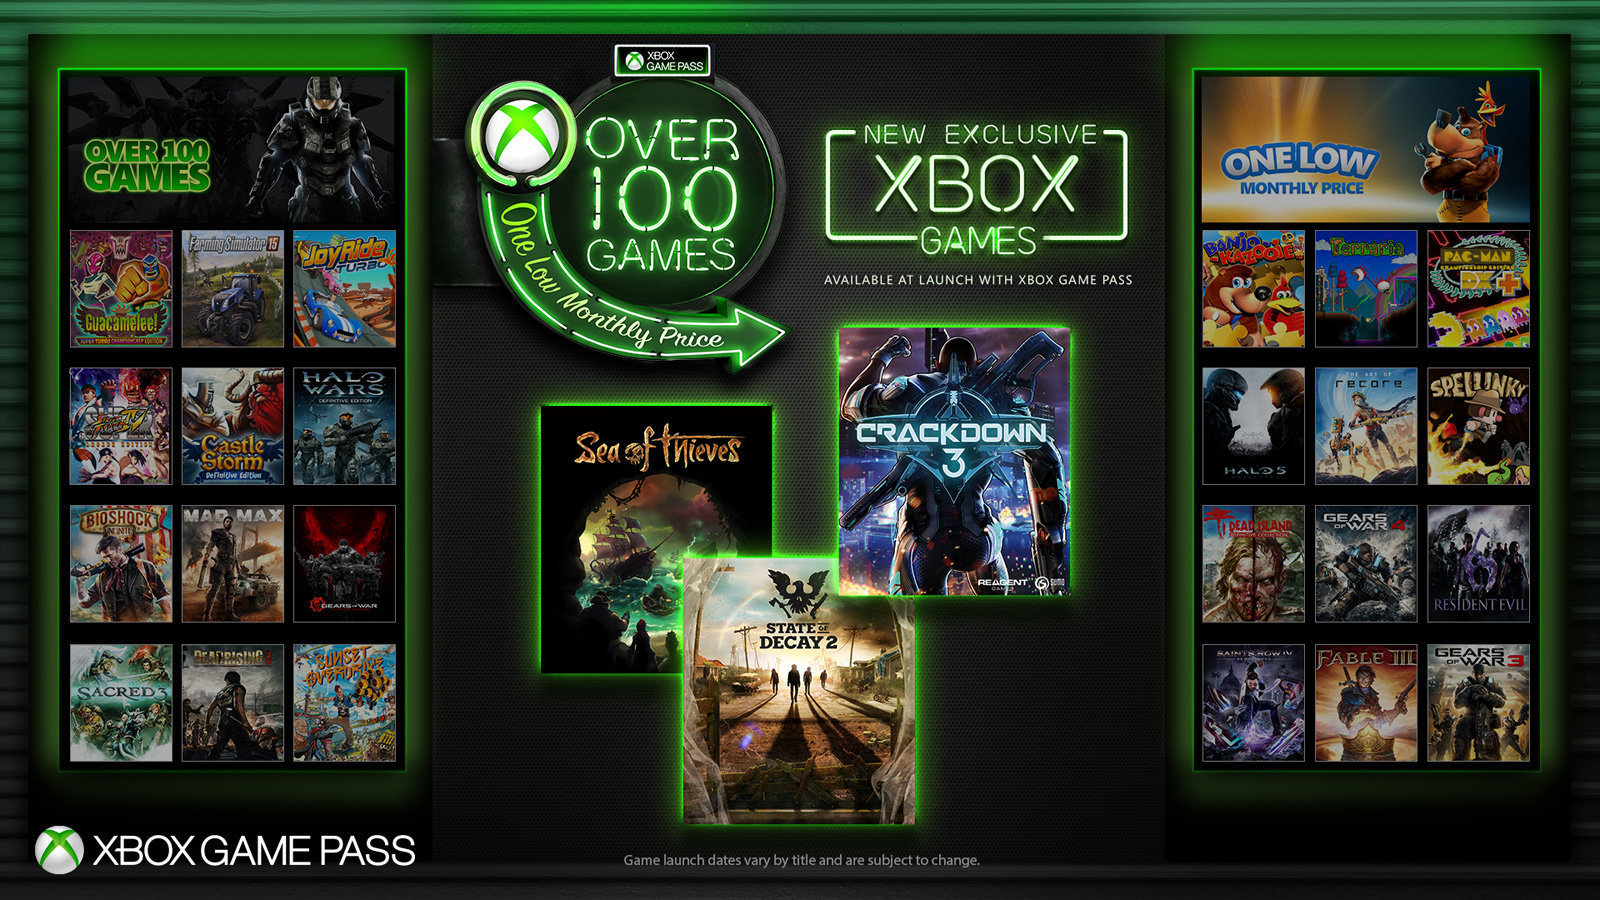 Xbox-Game-Pass-Ultimate-combines-Gold-and-games-for-15-a-month.png